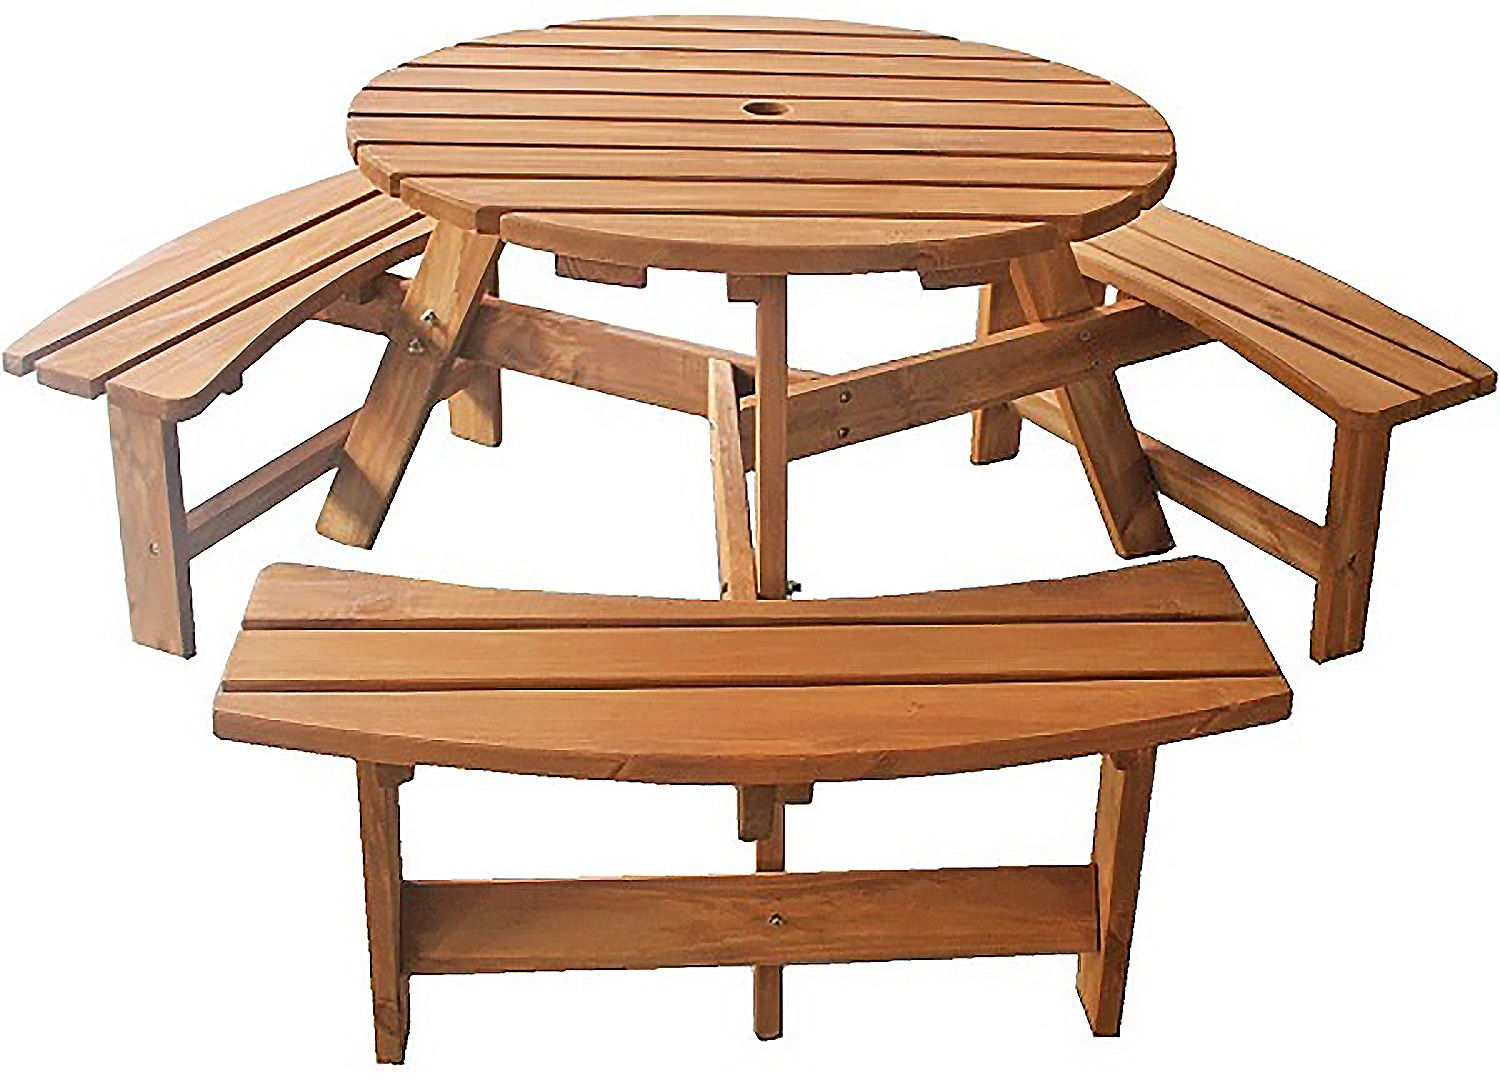 Large Wooden Bench For Pinterest. Full resolution  image, nominally Width 1500 Height 1082 pixels, image with #A26229.